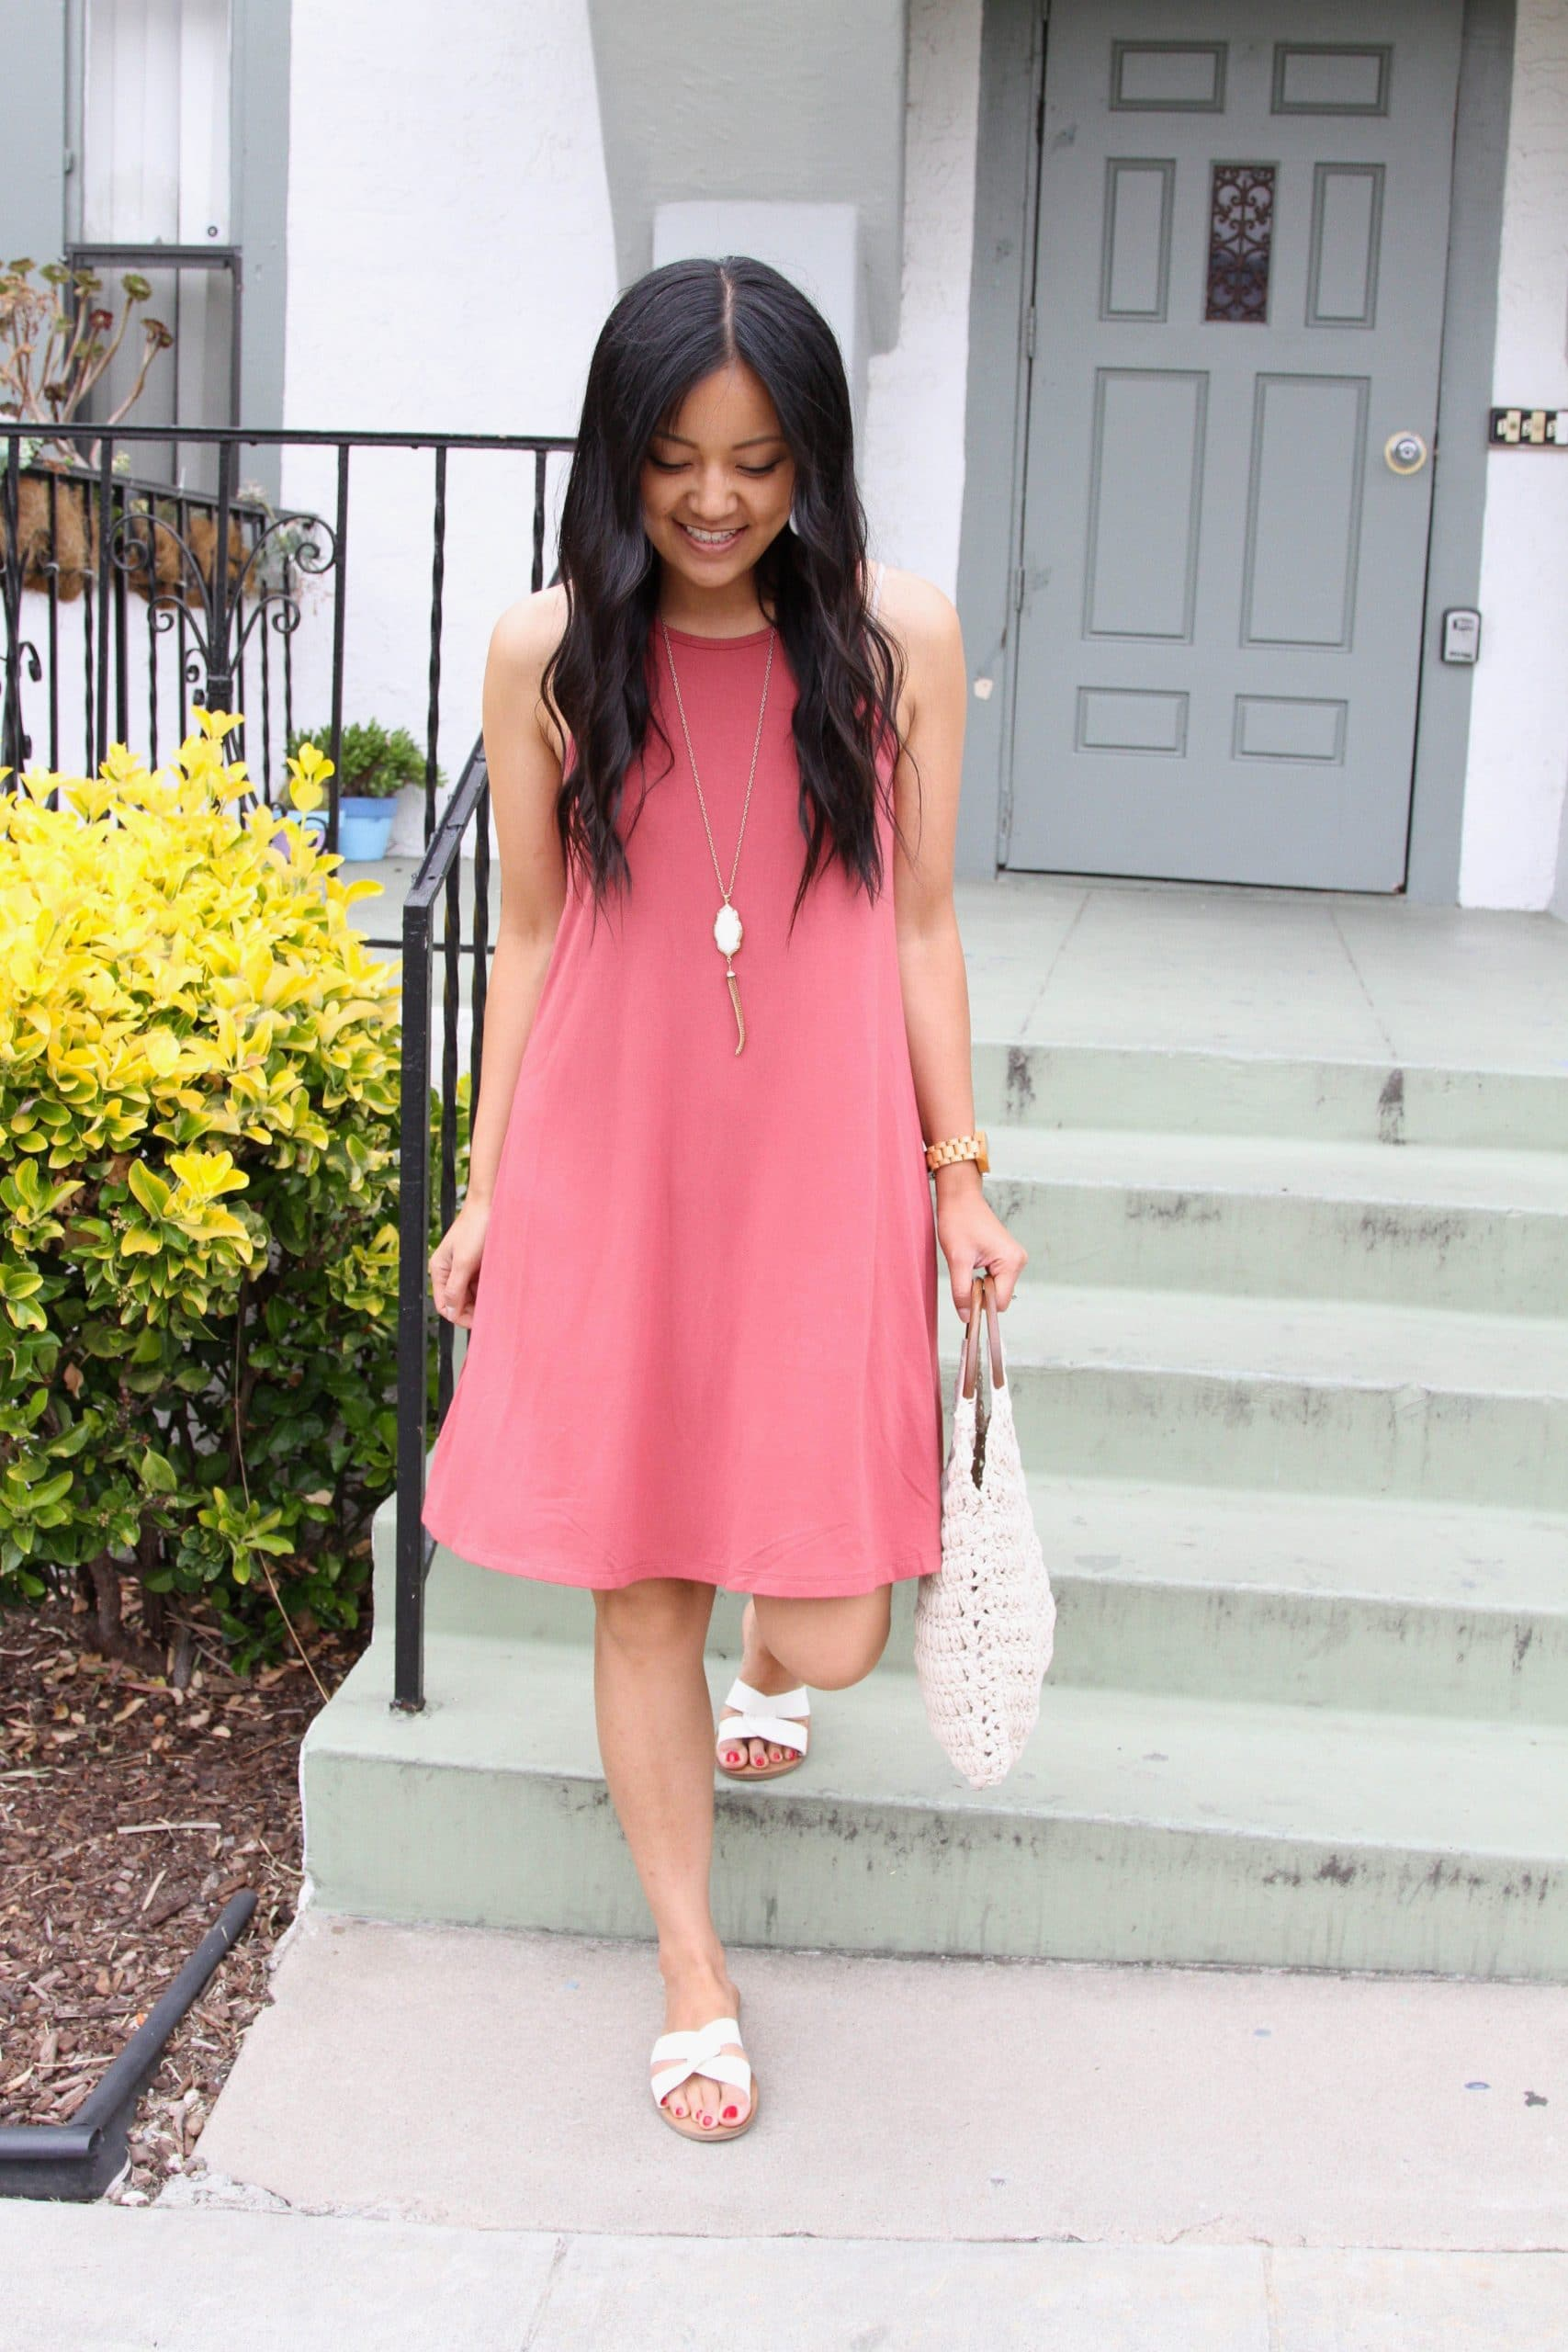 Casual Summer Dress Outfit: sleevelss pink swing dress + white slide sandals + white crochet bag + long gold fringe pendant necklace + white leather earrings